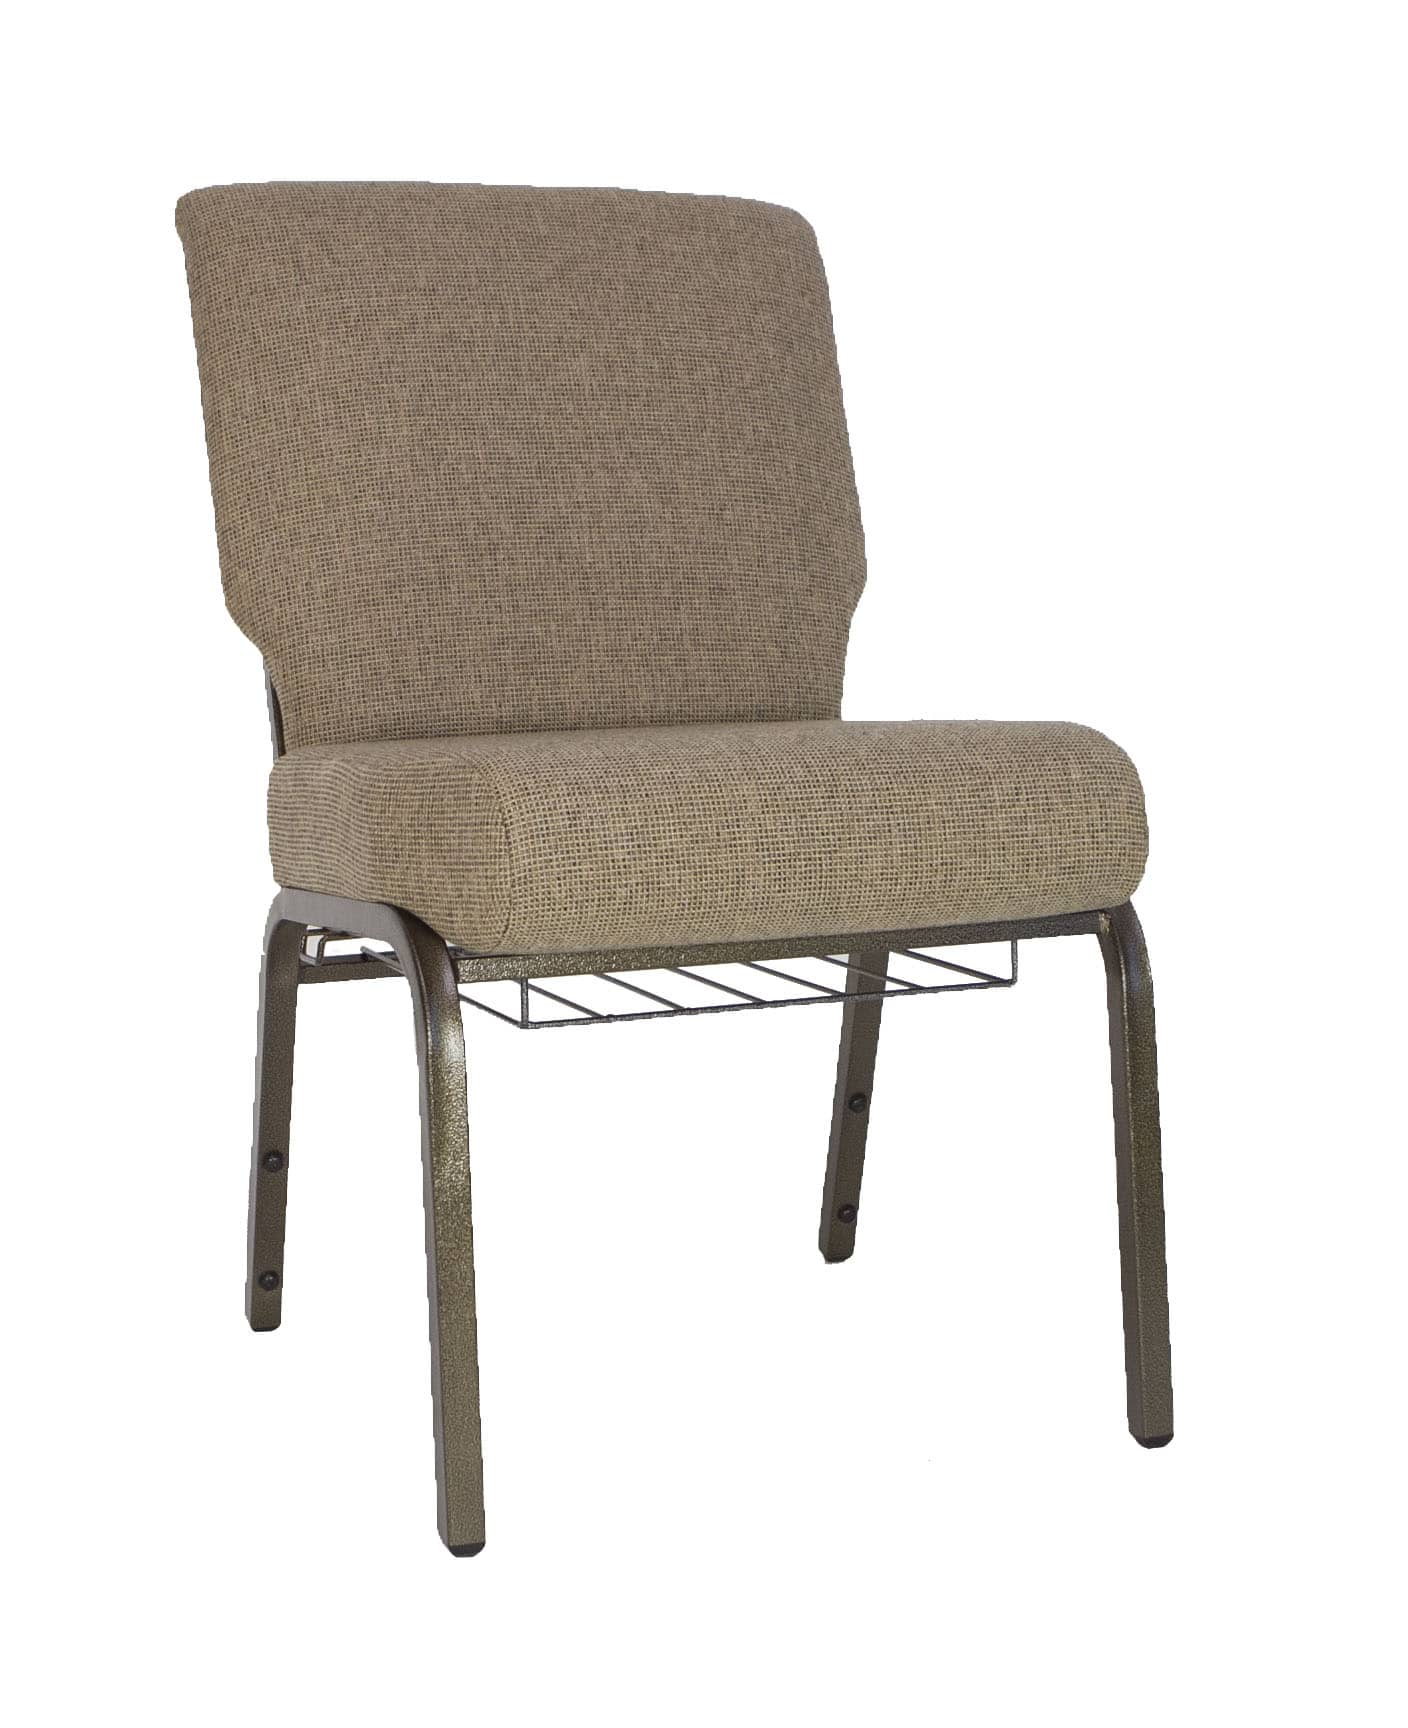 AMCC Mixed Tan 20 Inch Padded Church Chair  The Furniture Family